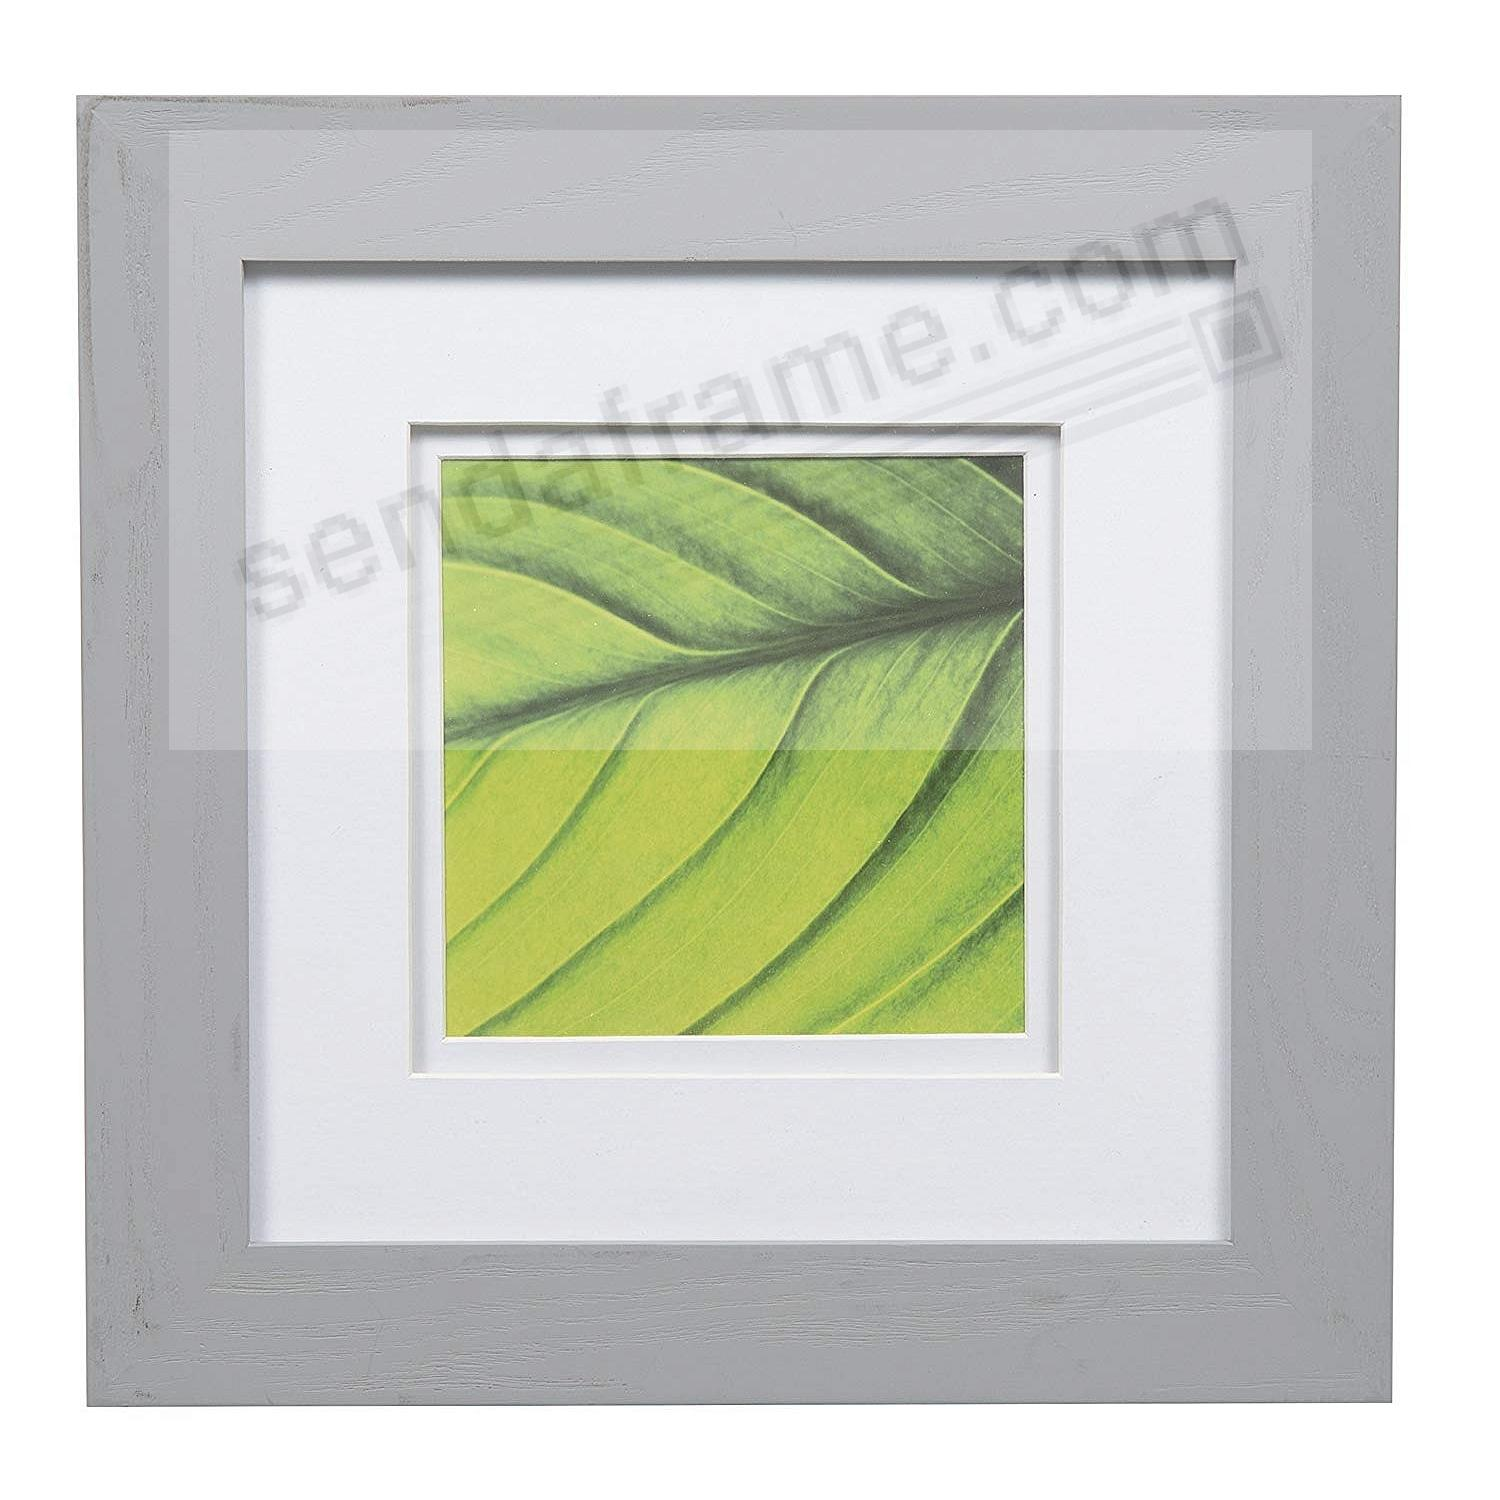 BRUSHED SILVER 8x8/5x5 double matted frame by Gallery Solutions™